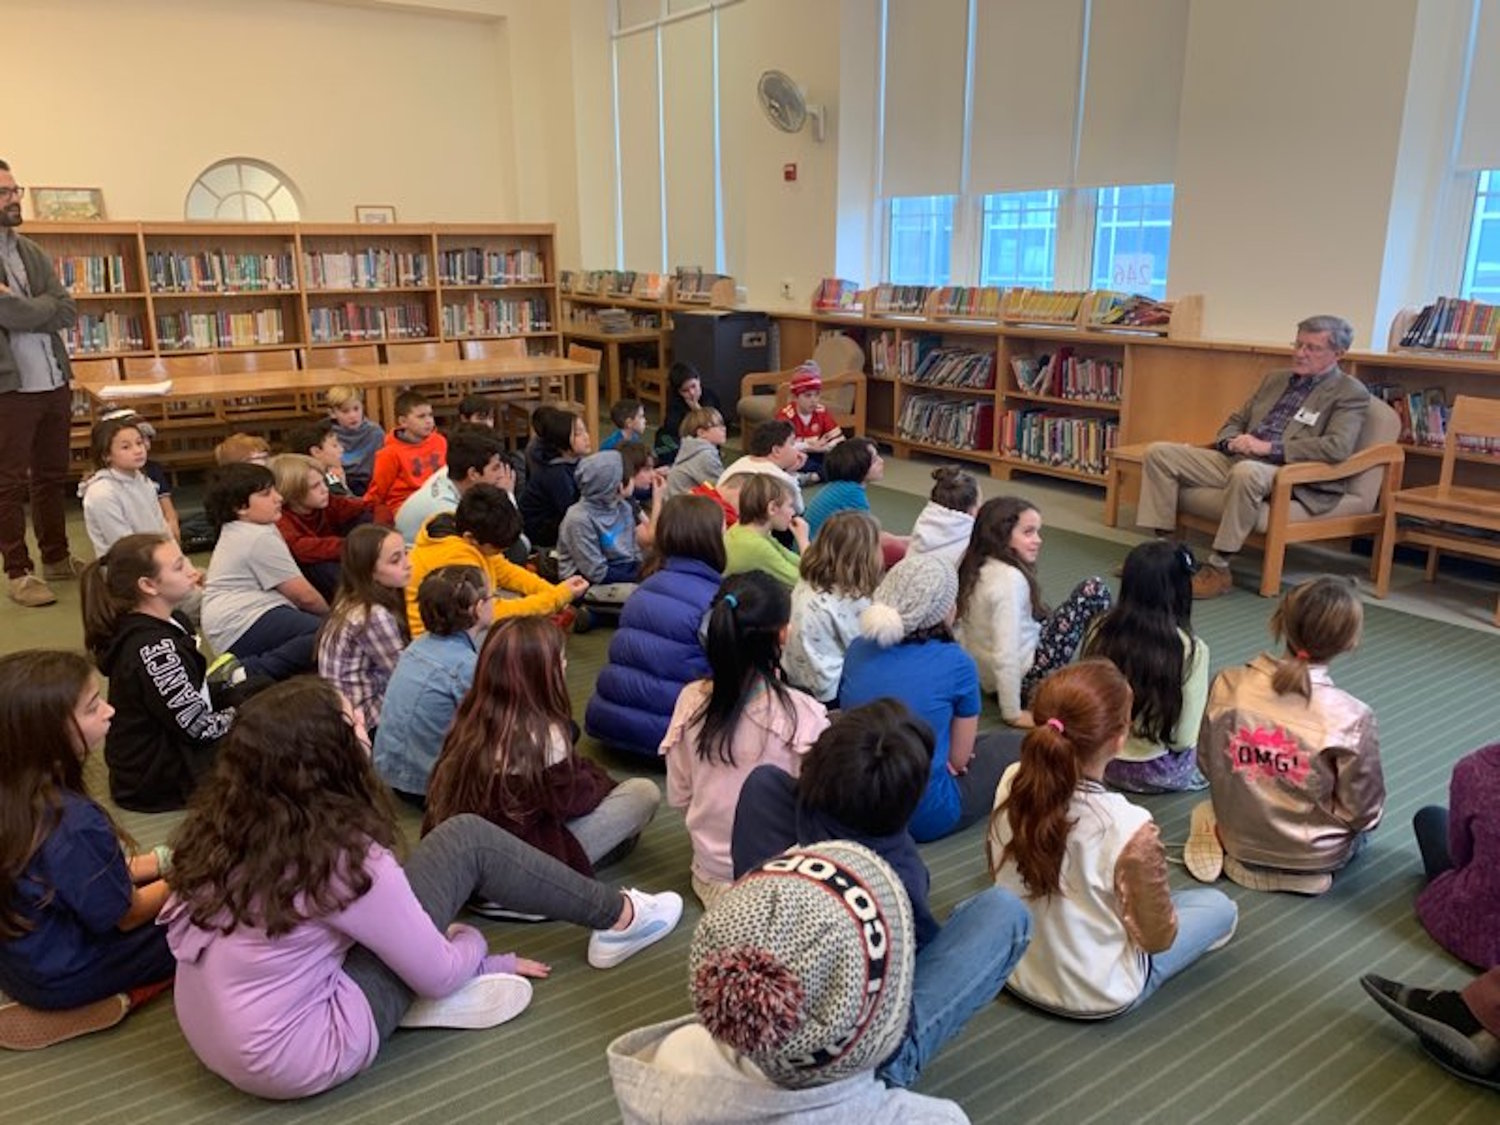 The composer Carl Strommen, of Glen Head, met with Sea Cliff Elementary School students to discuss what it's like to be a composer. The current fifth-graders wrote the lyrics for the school's new anthem.